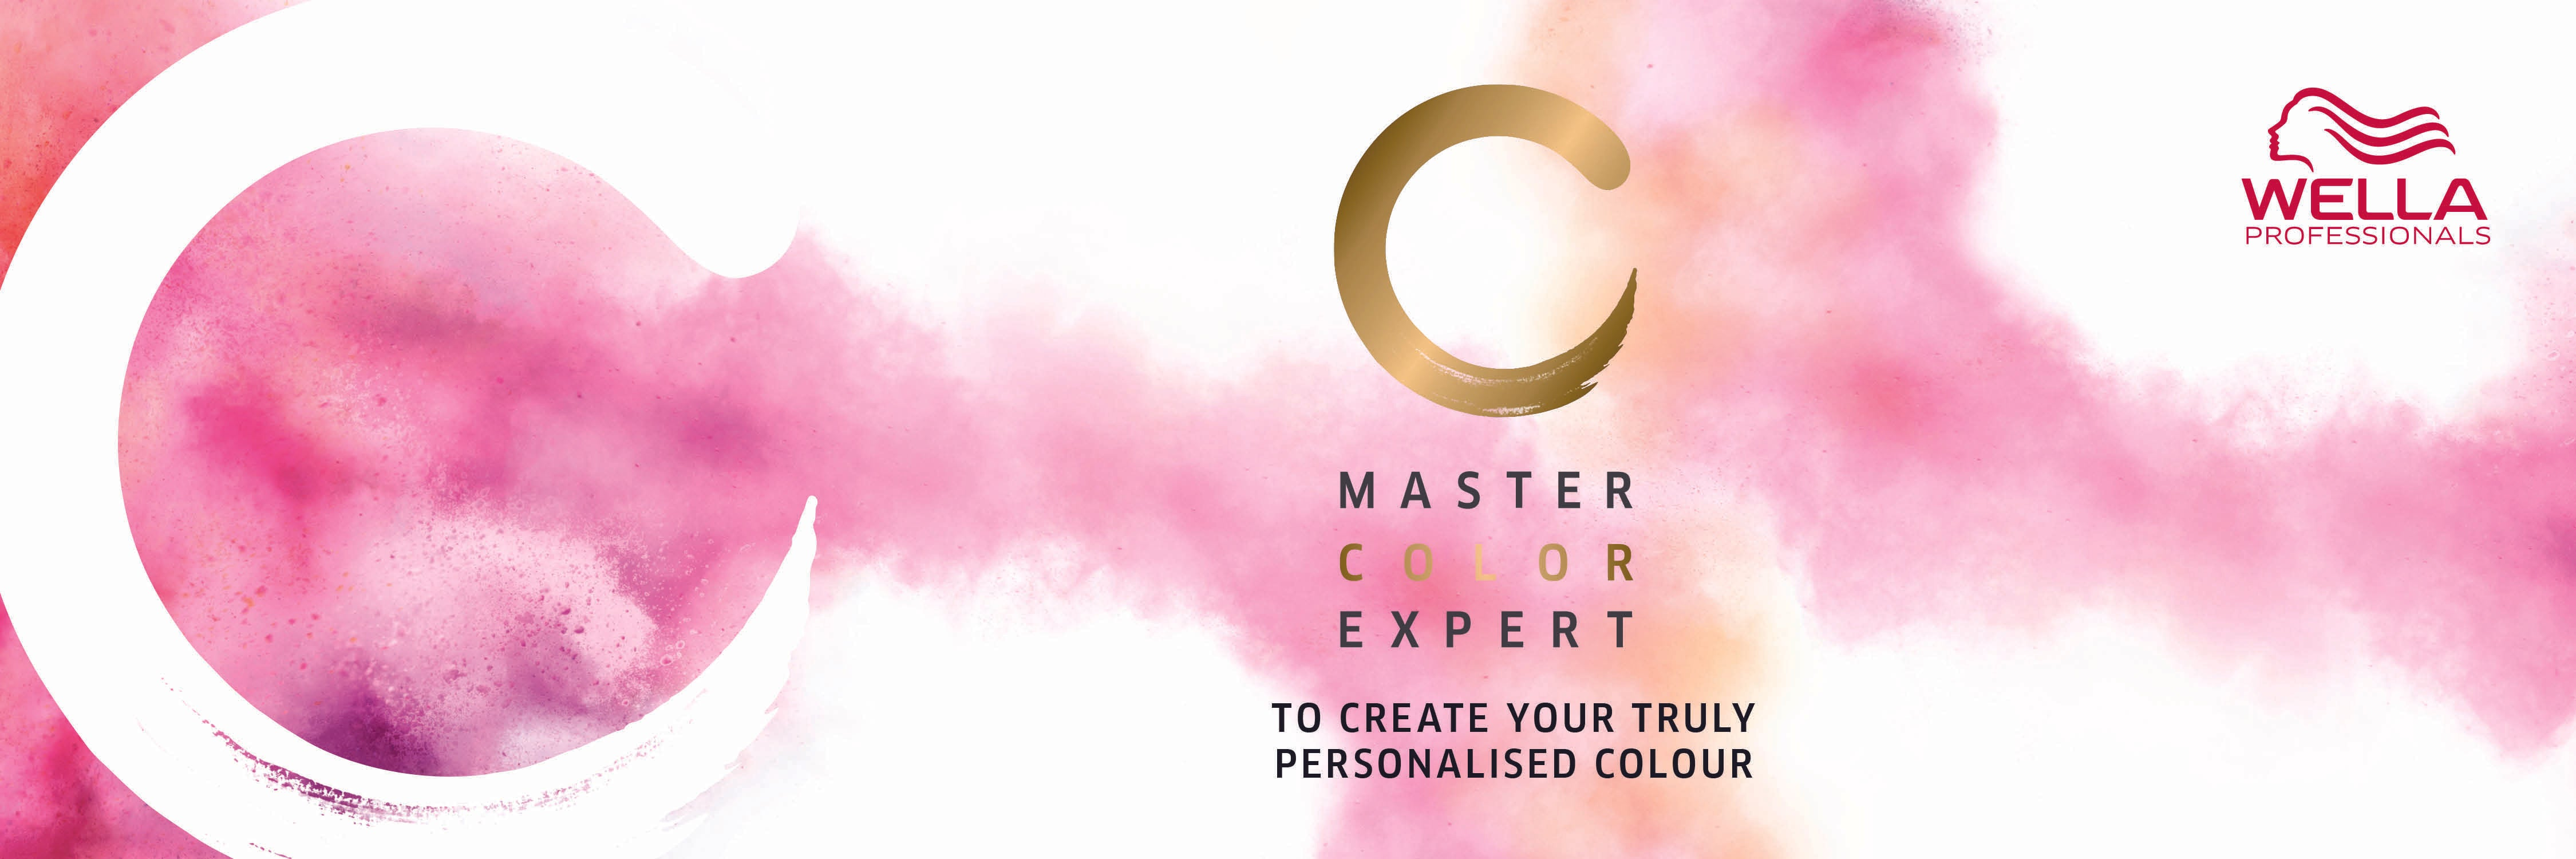 Wella Master Color Experts